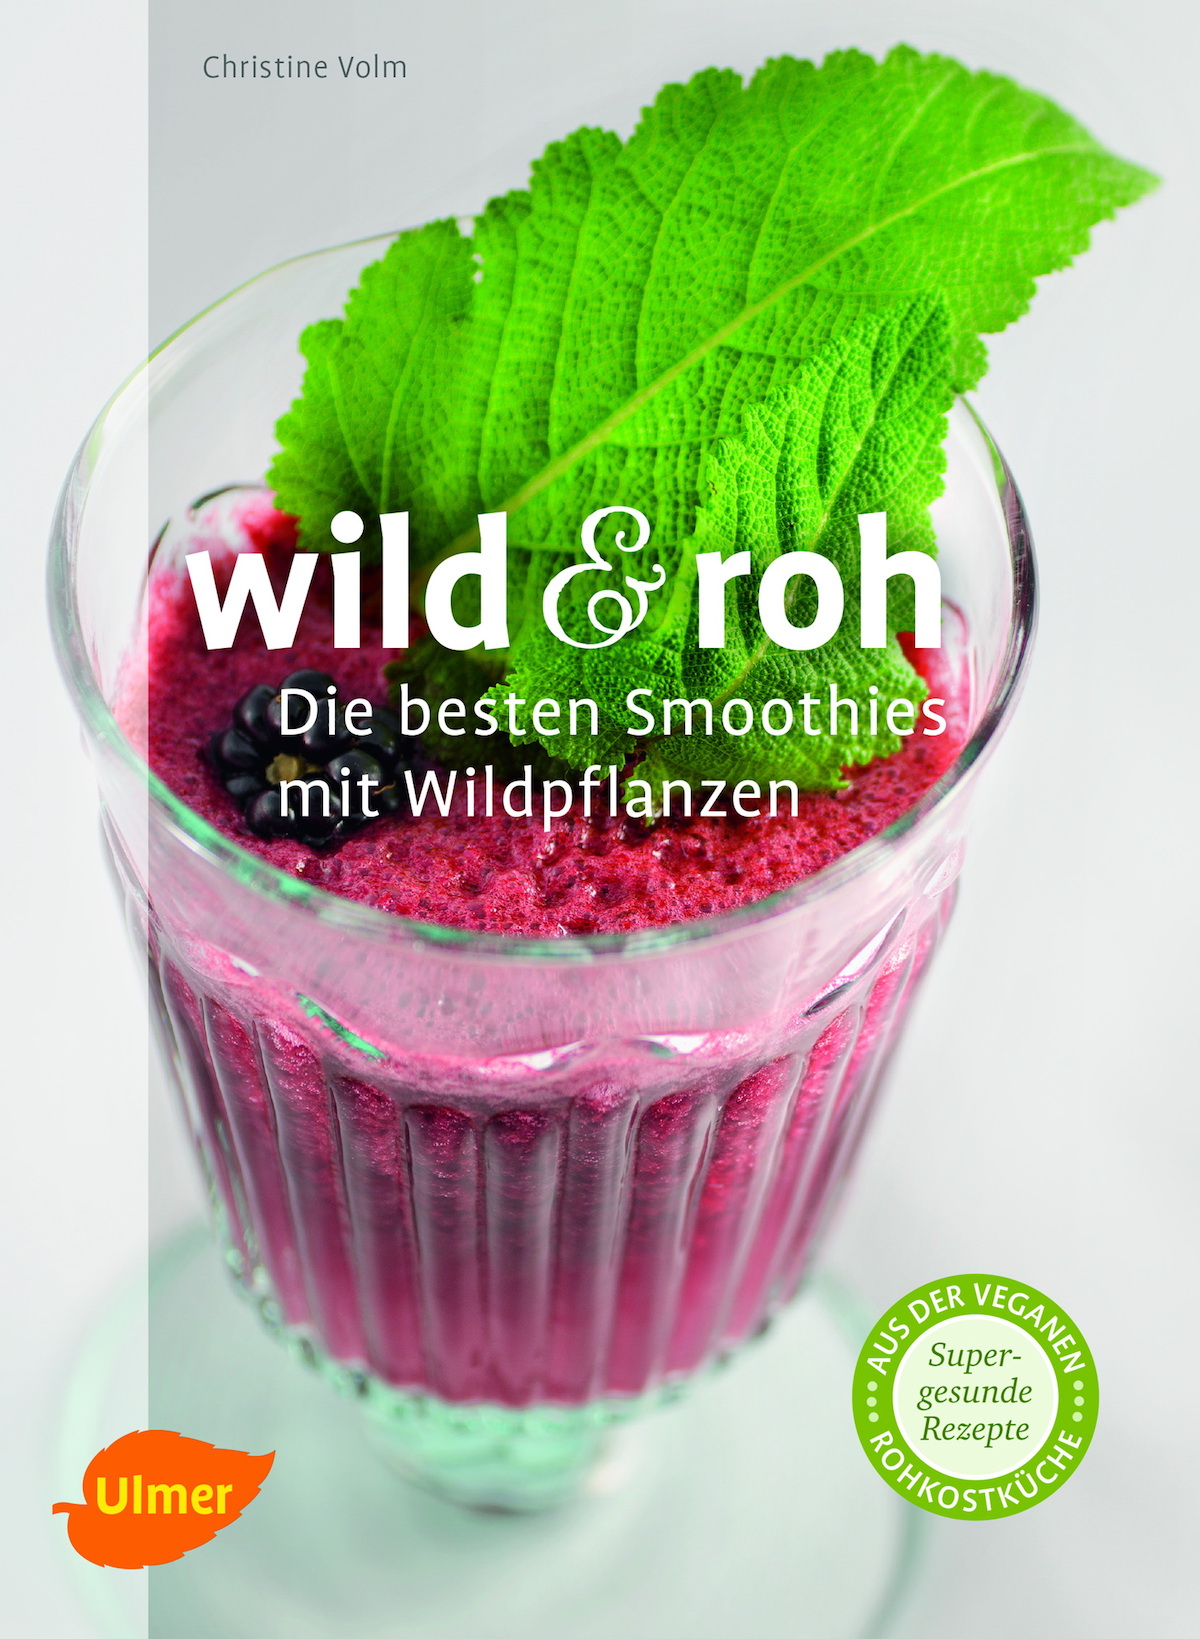 Wild + Raw Smoothie Book by Dr Christine Volm